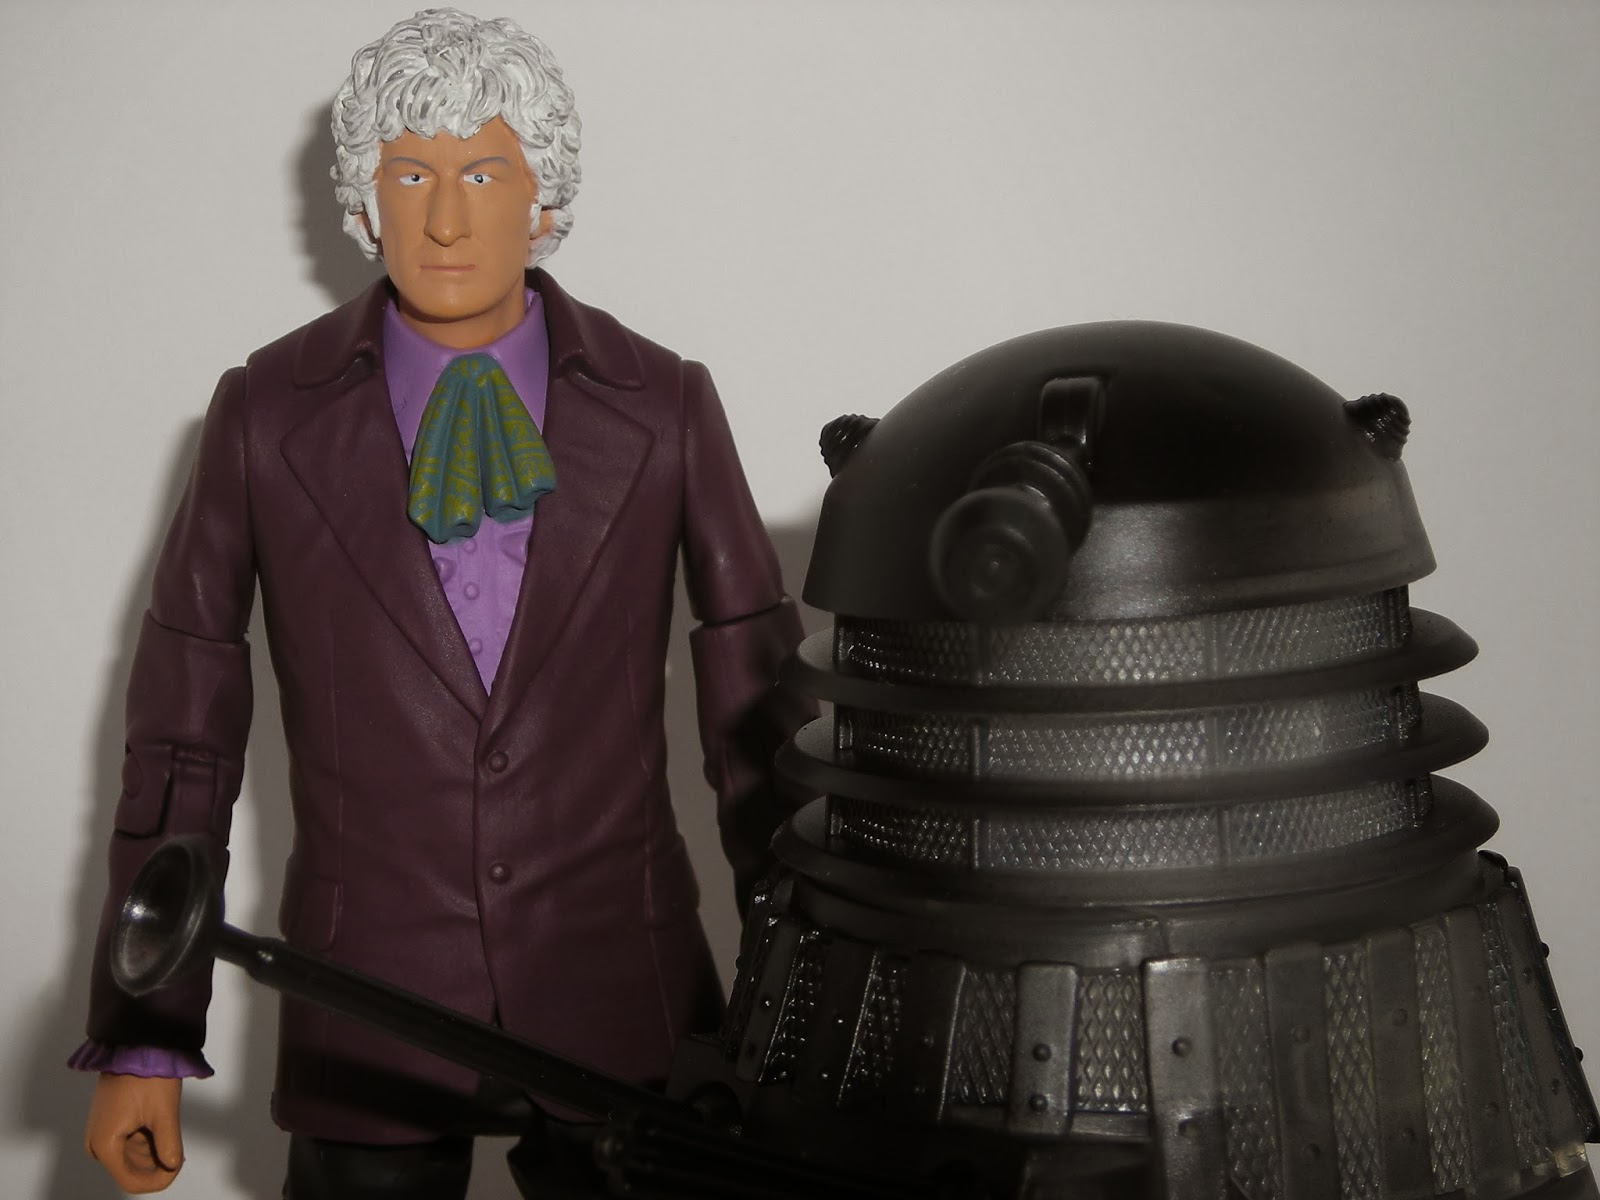 The third Doctor and Anti-Reflecting Light Wave Dalek